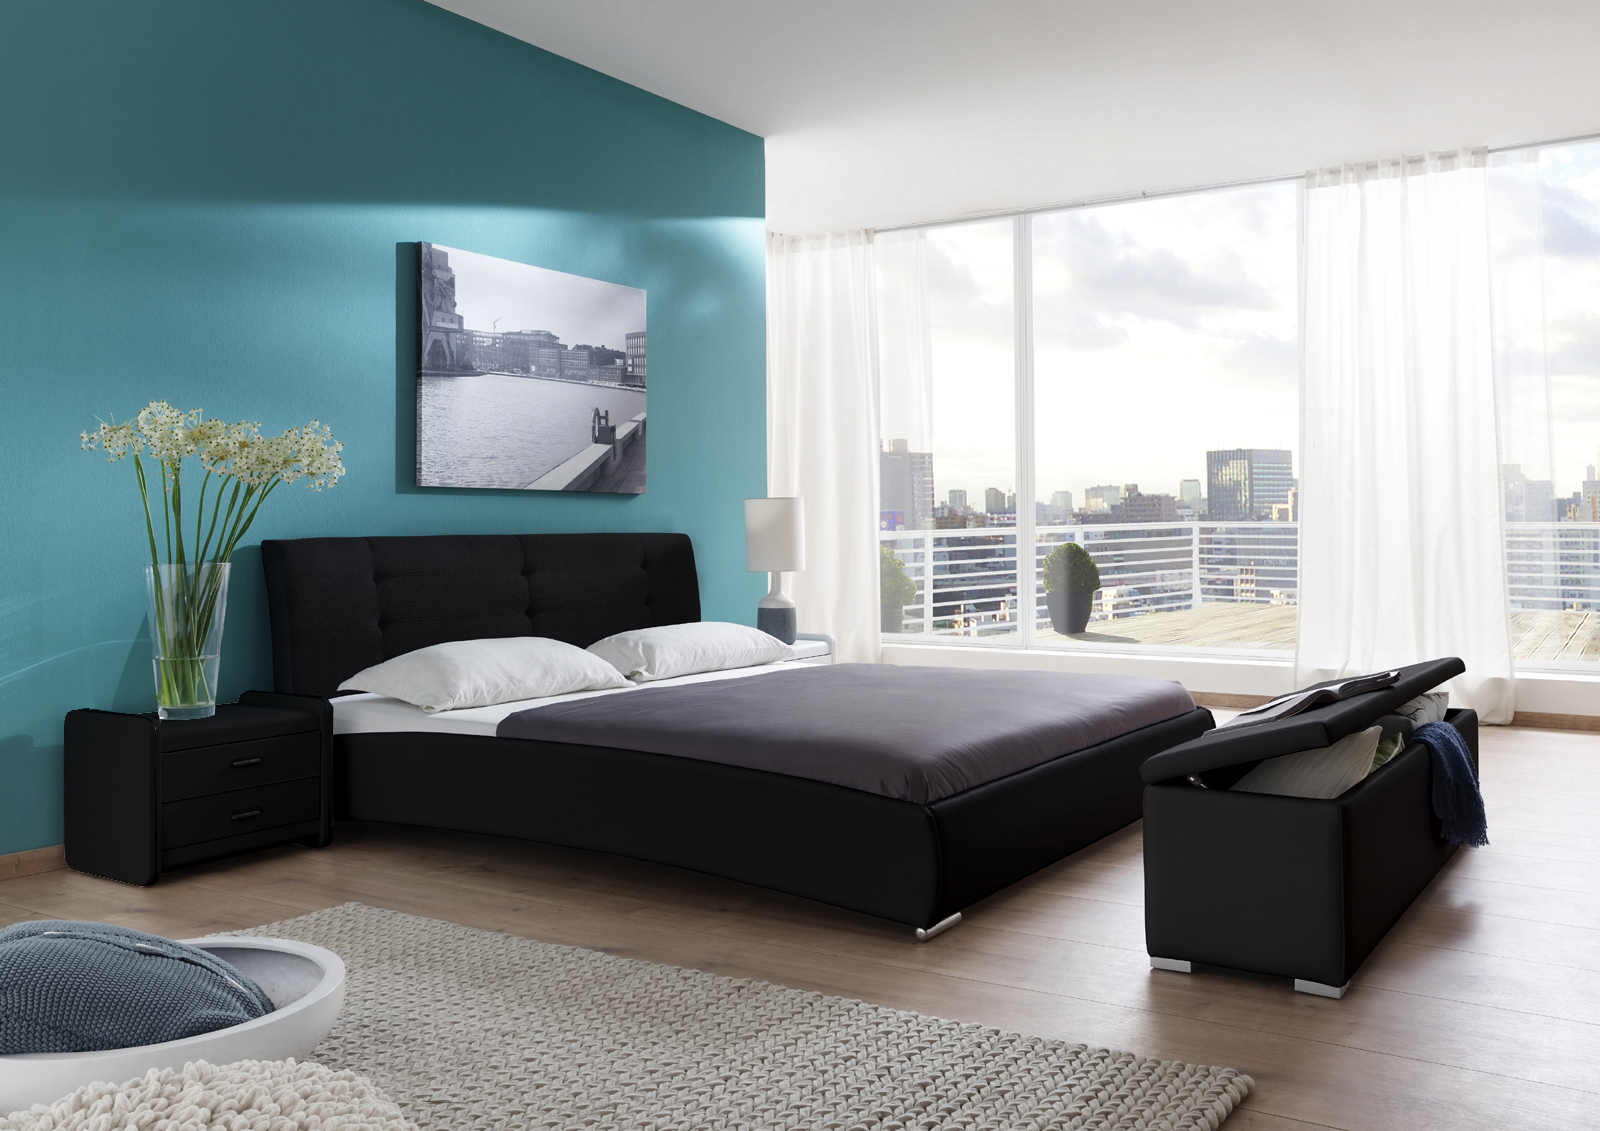 sam polsterbett einzelbett 90 x 200 cm schwarz bebop. Black Bedroom Furniture Sets. Home Design Ideas